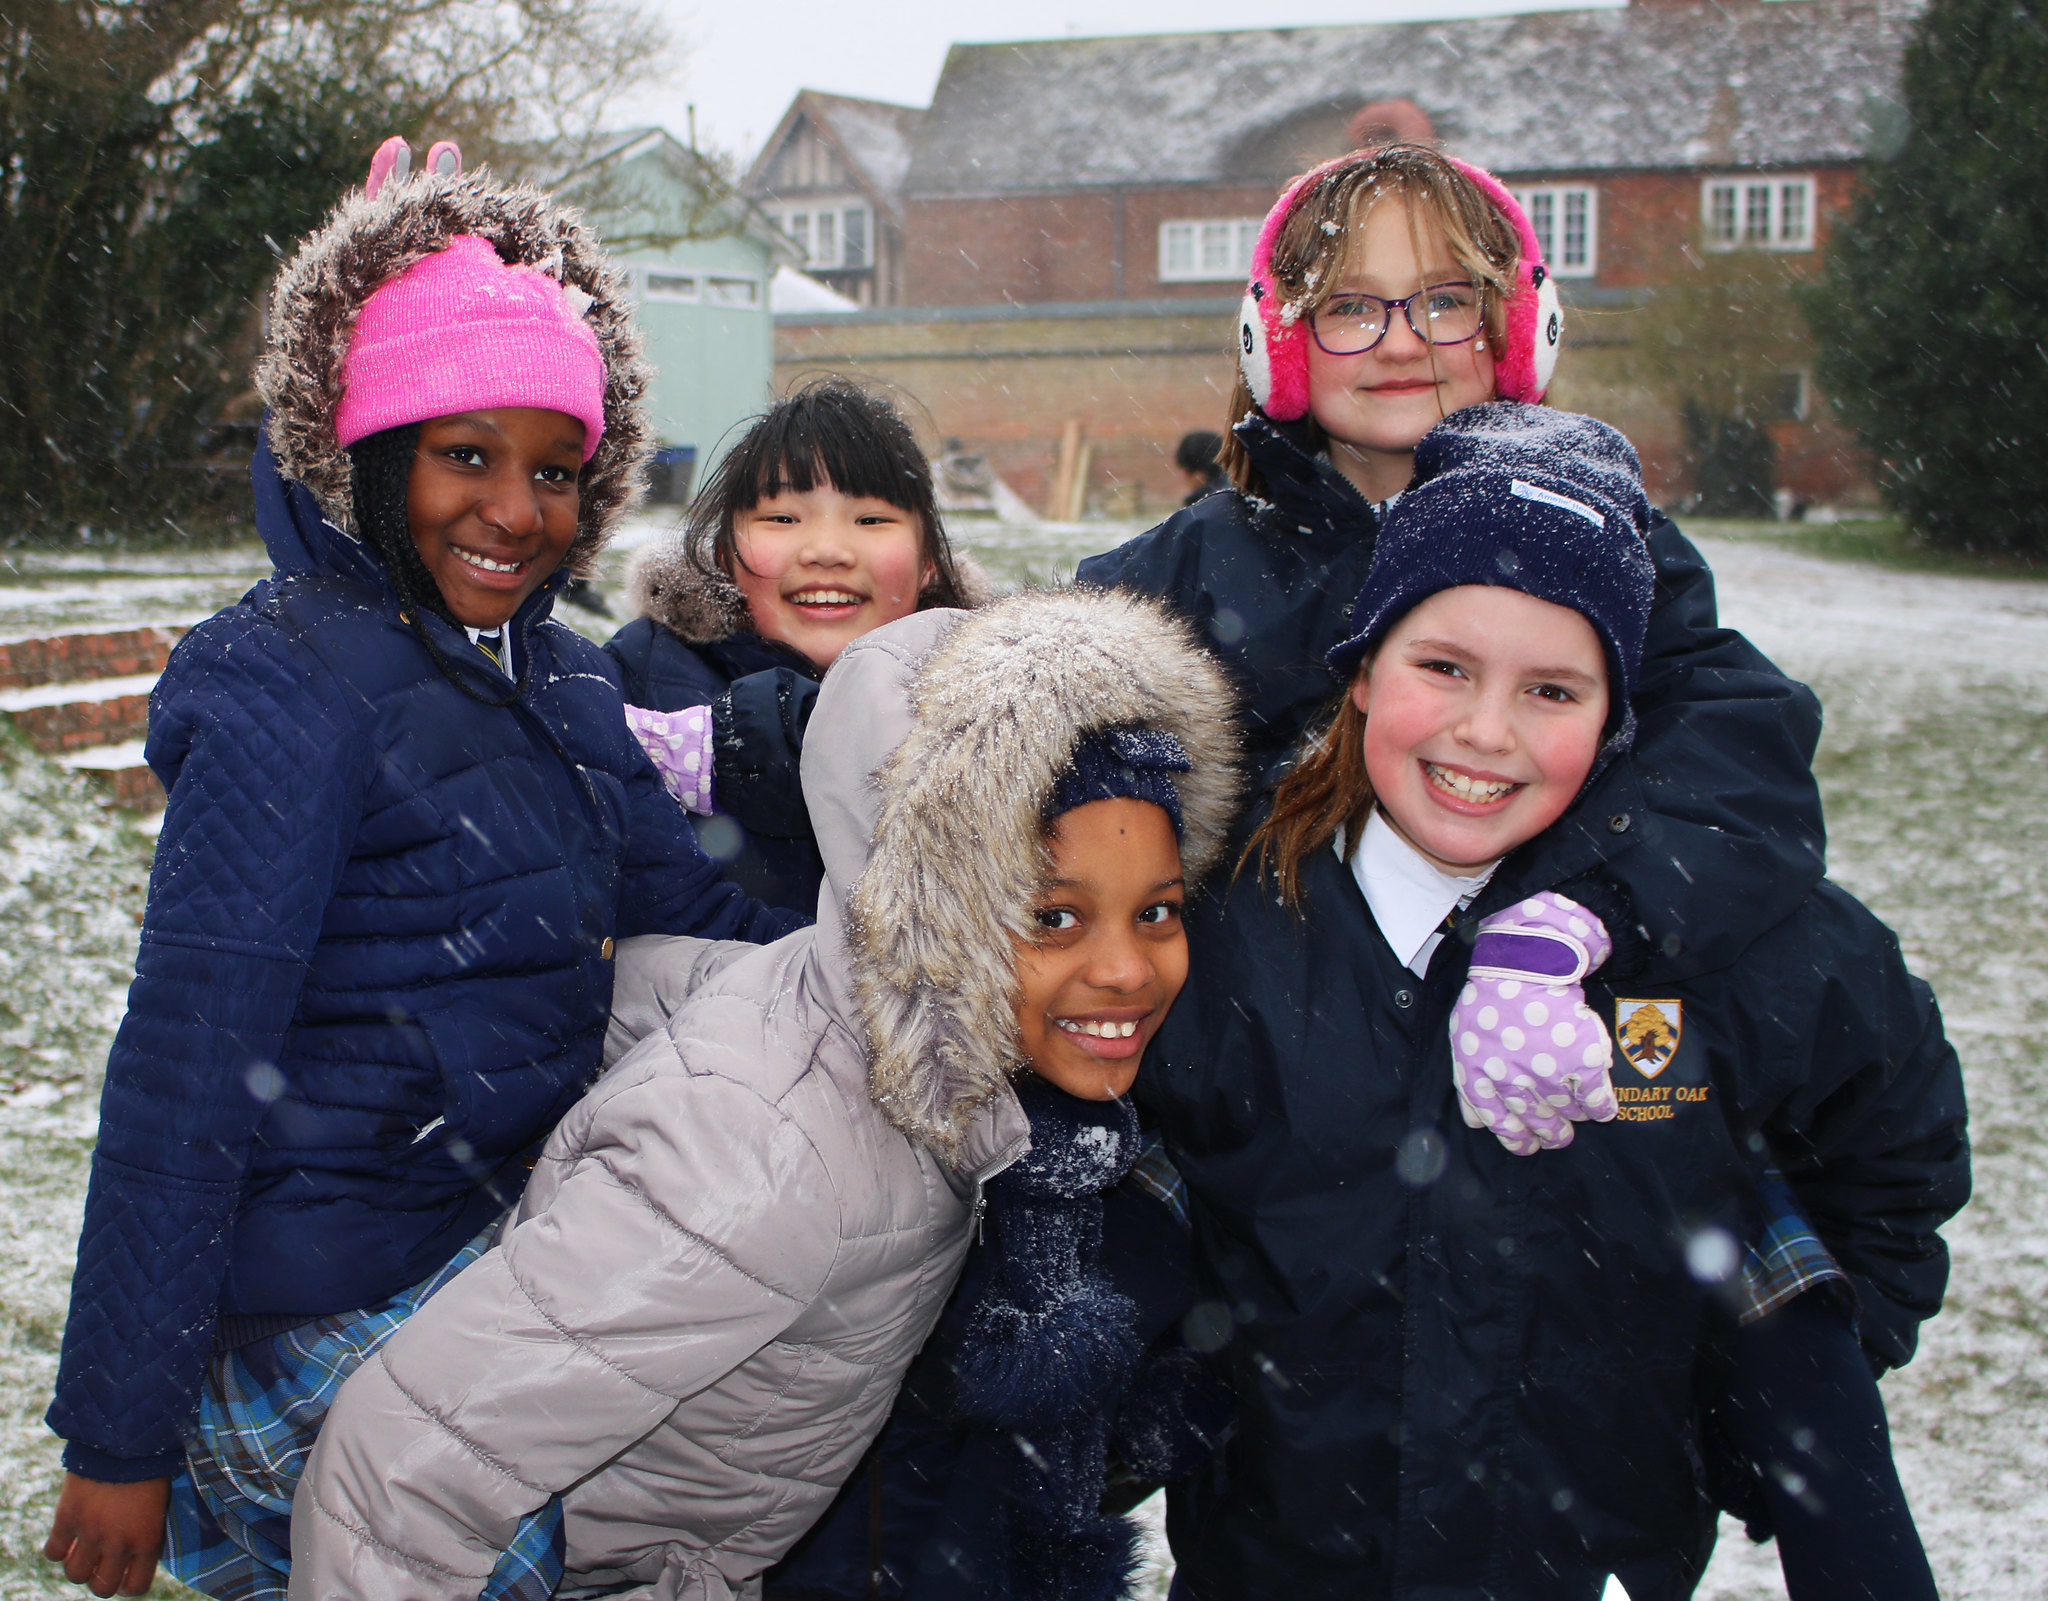 Spring Snow at Boundary Oak School